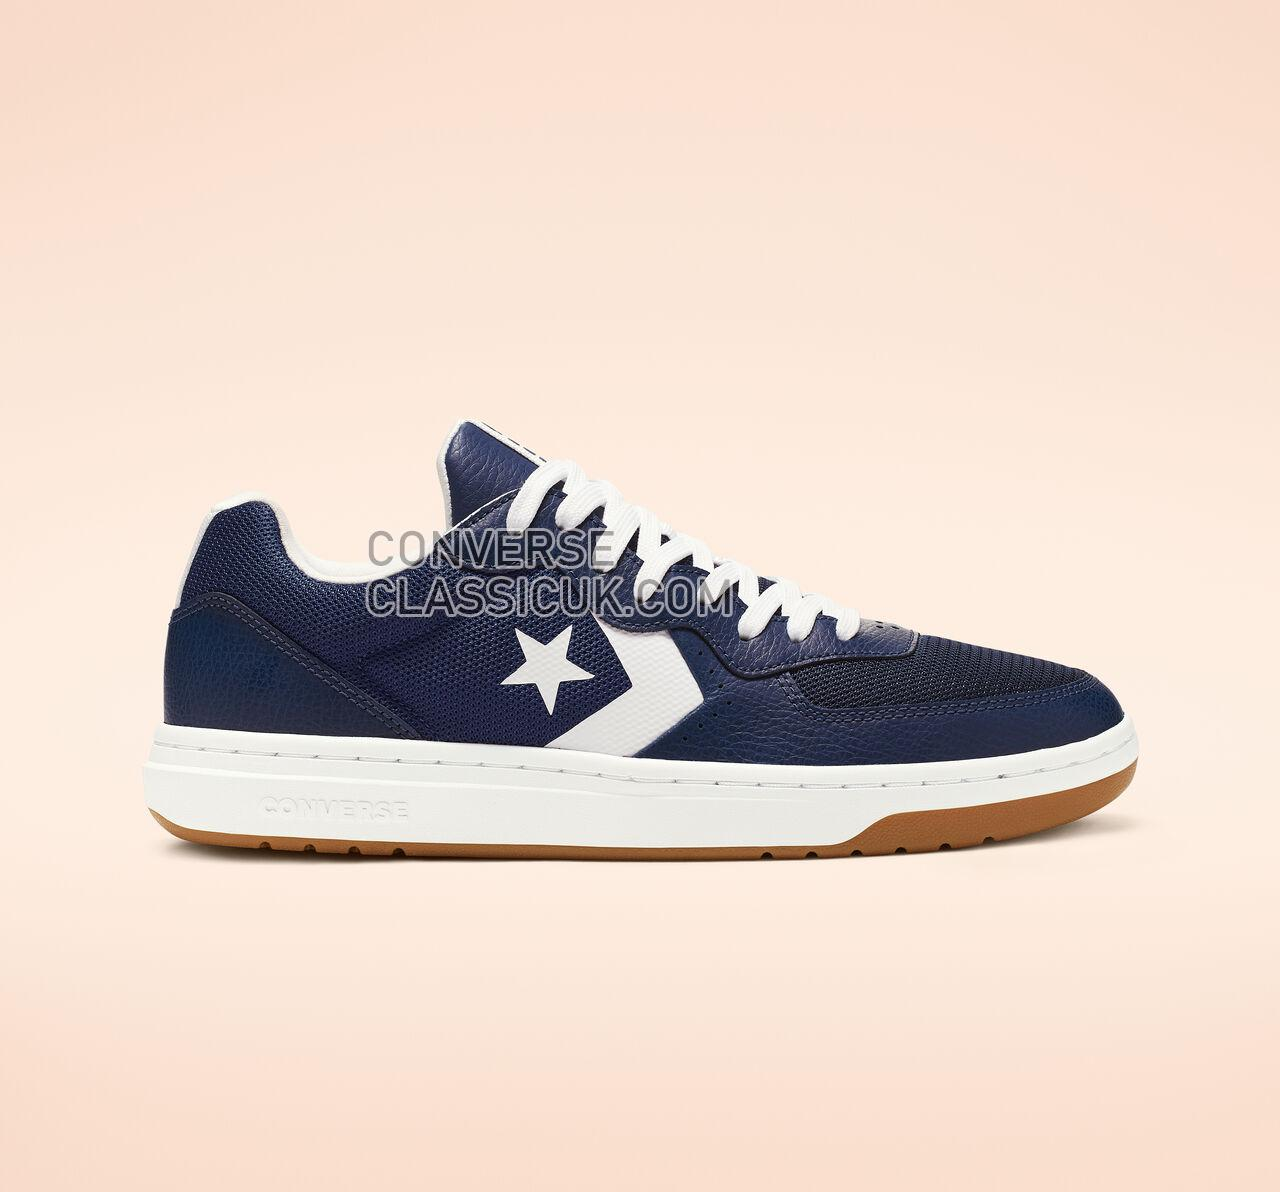 Converse Rival Leather Low Top Mens Womens Unisex 163210C Navy/White/Gum Shoes